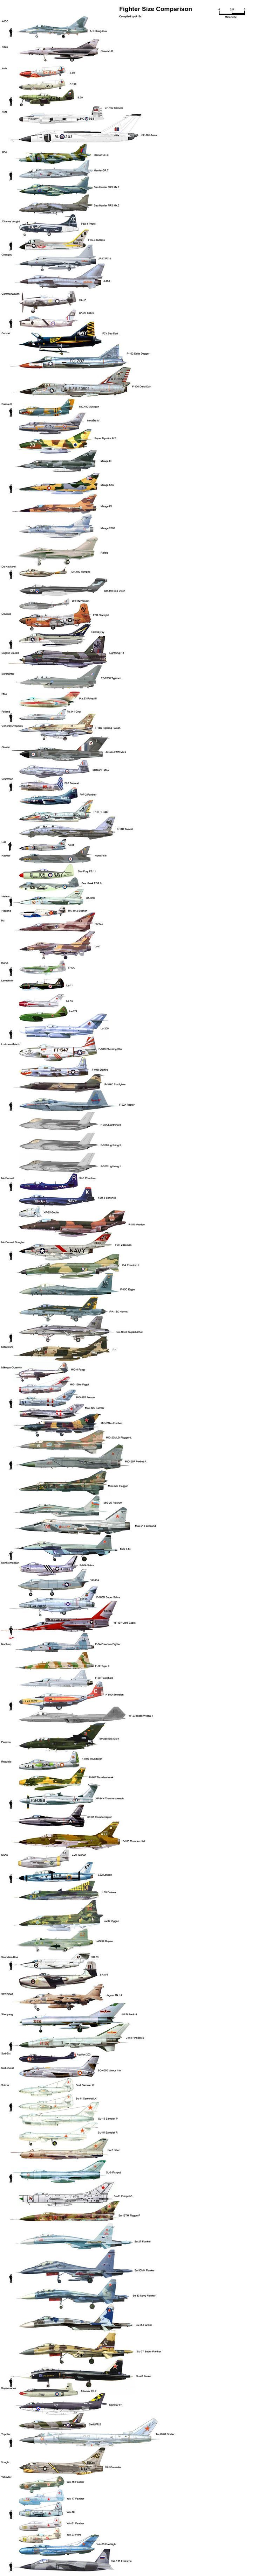 Patterns of International Plane's; Size & Scale Comparisons: